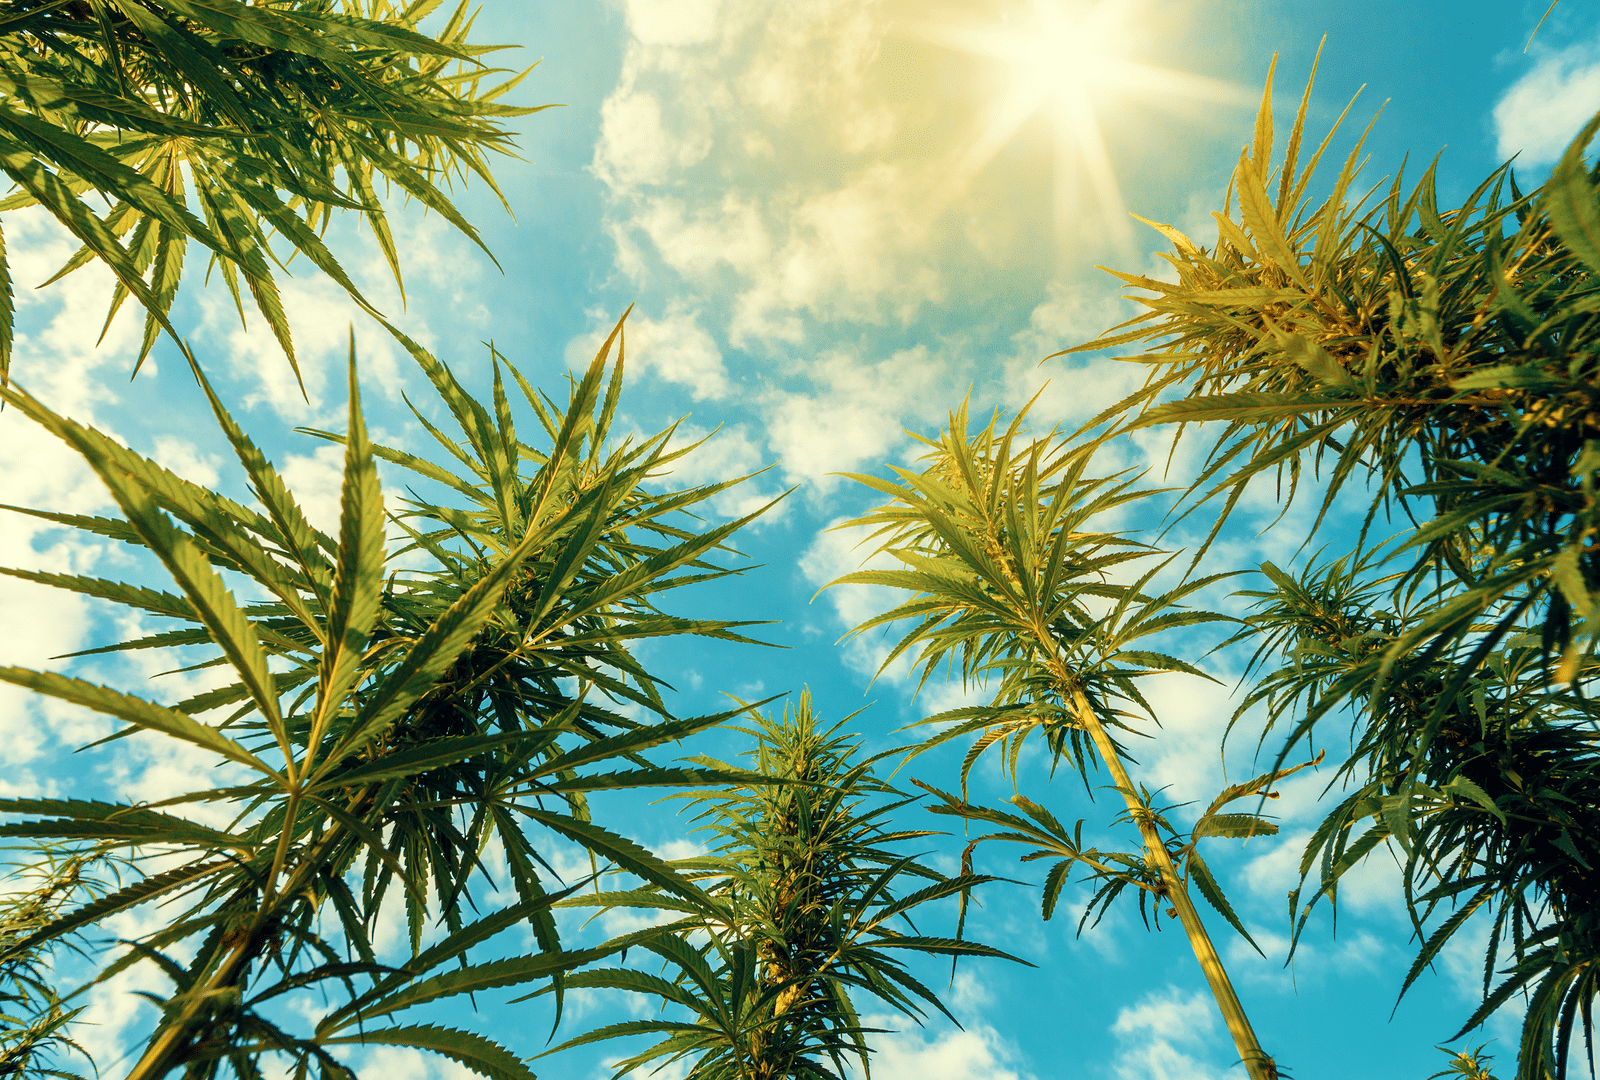 Cannabis real estate in Illinois gets push from REIT IIP, 4Front Ventures